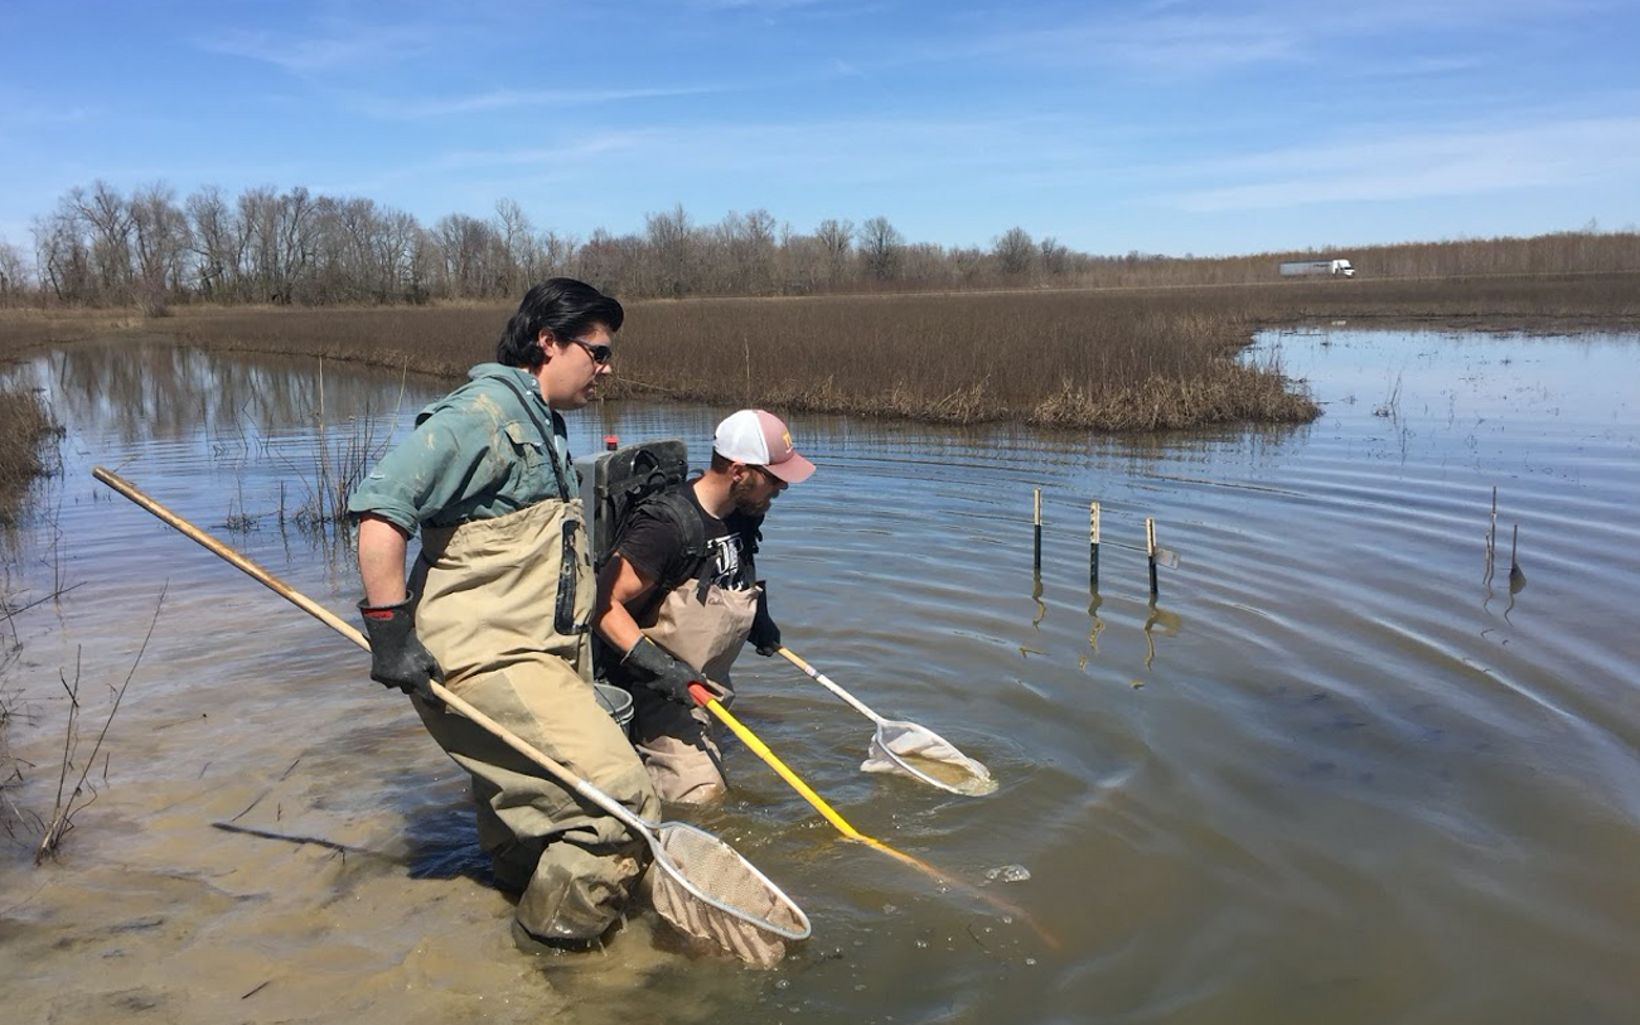 Two researchers dip nets into water in a wetland.